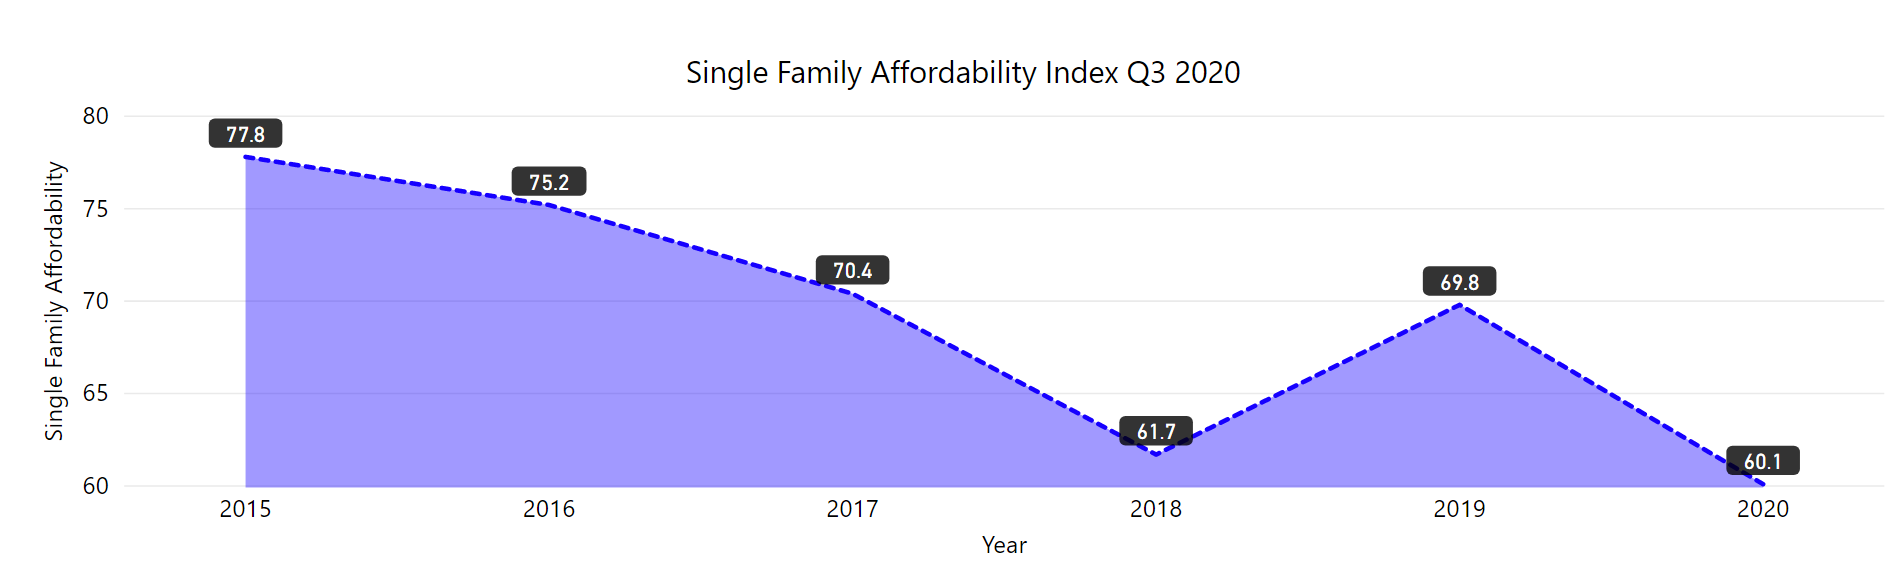 single family affordability index from 2015 to 2020. The index went down from 2015 to 2018, up in 2019 and down again in 2020.